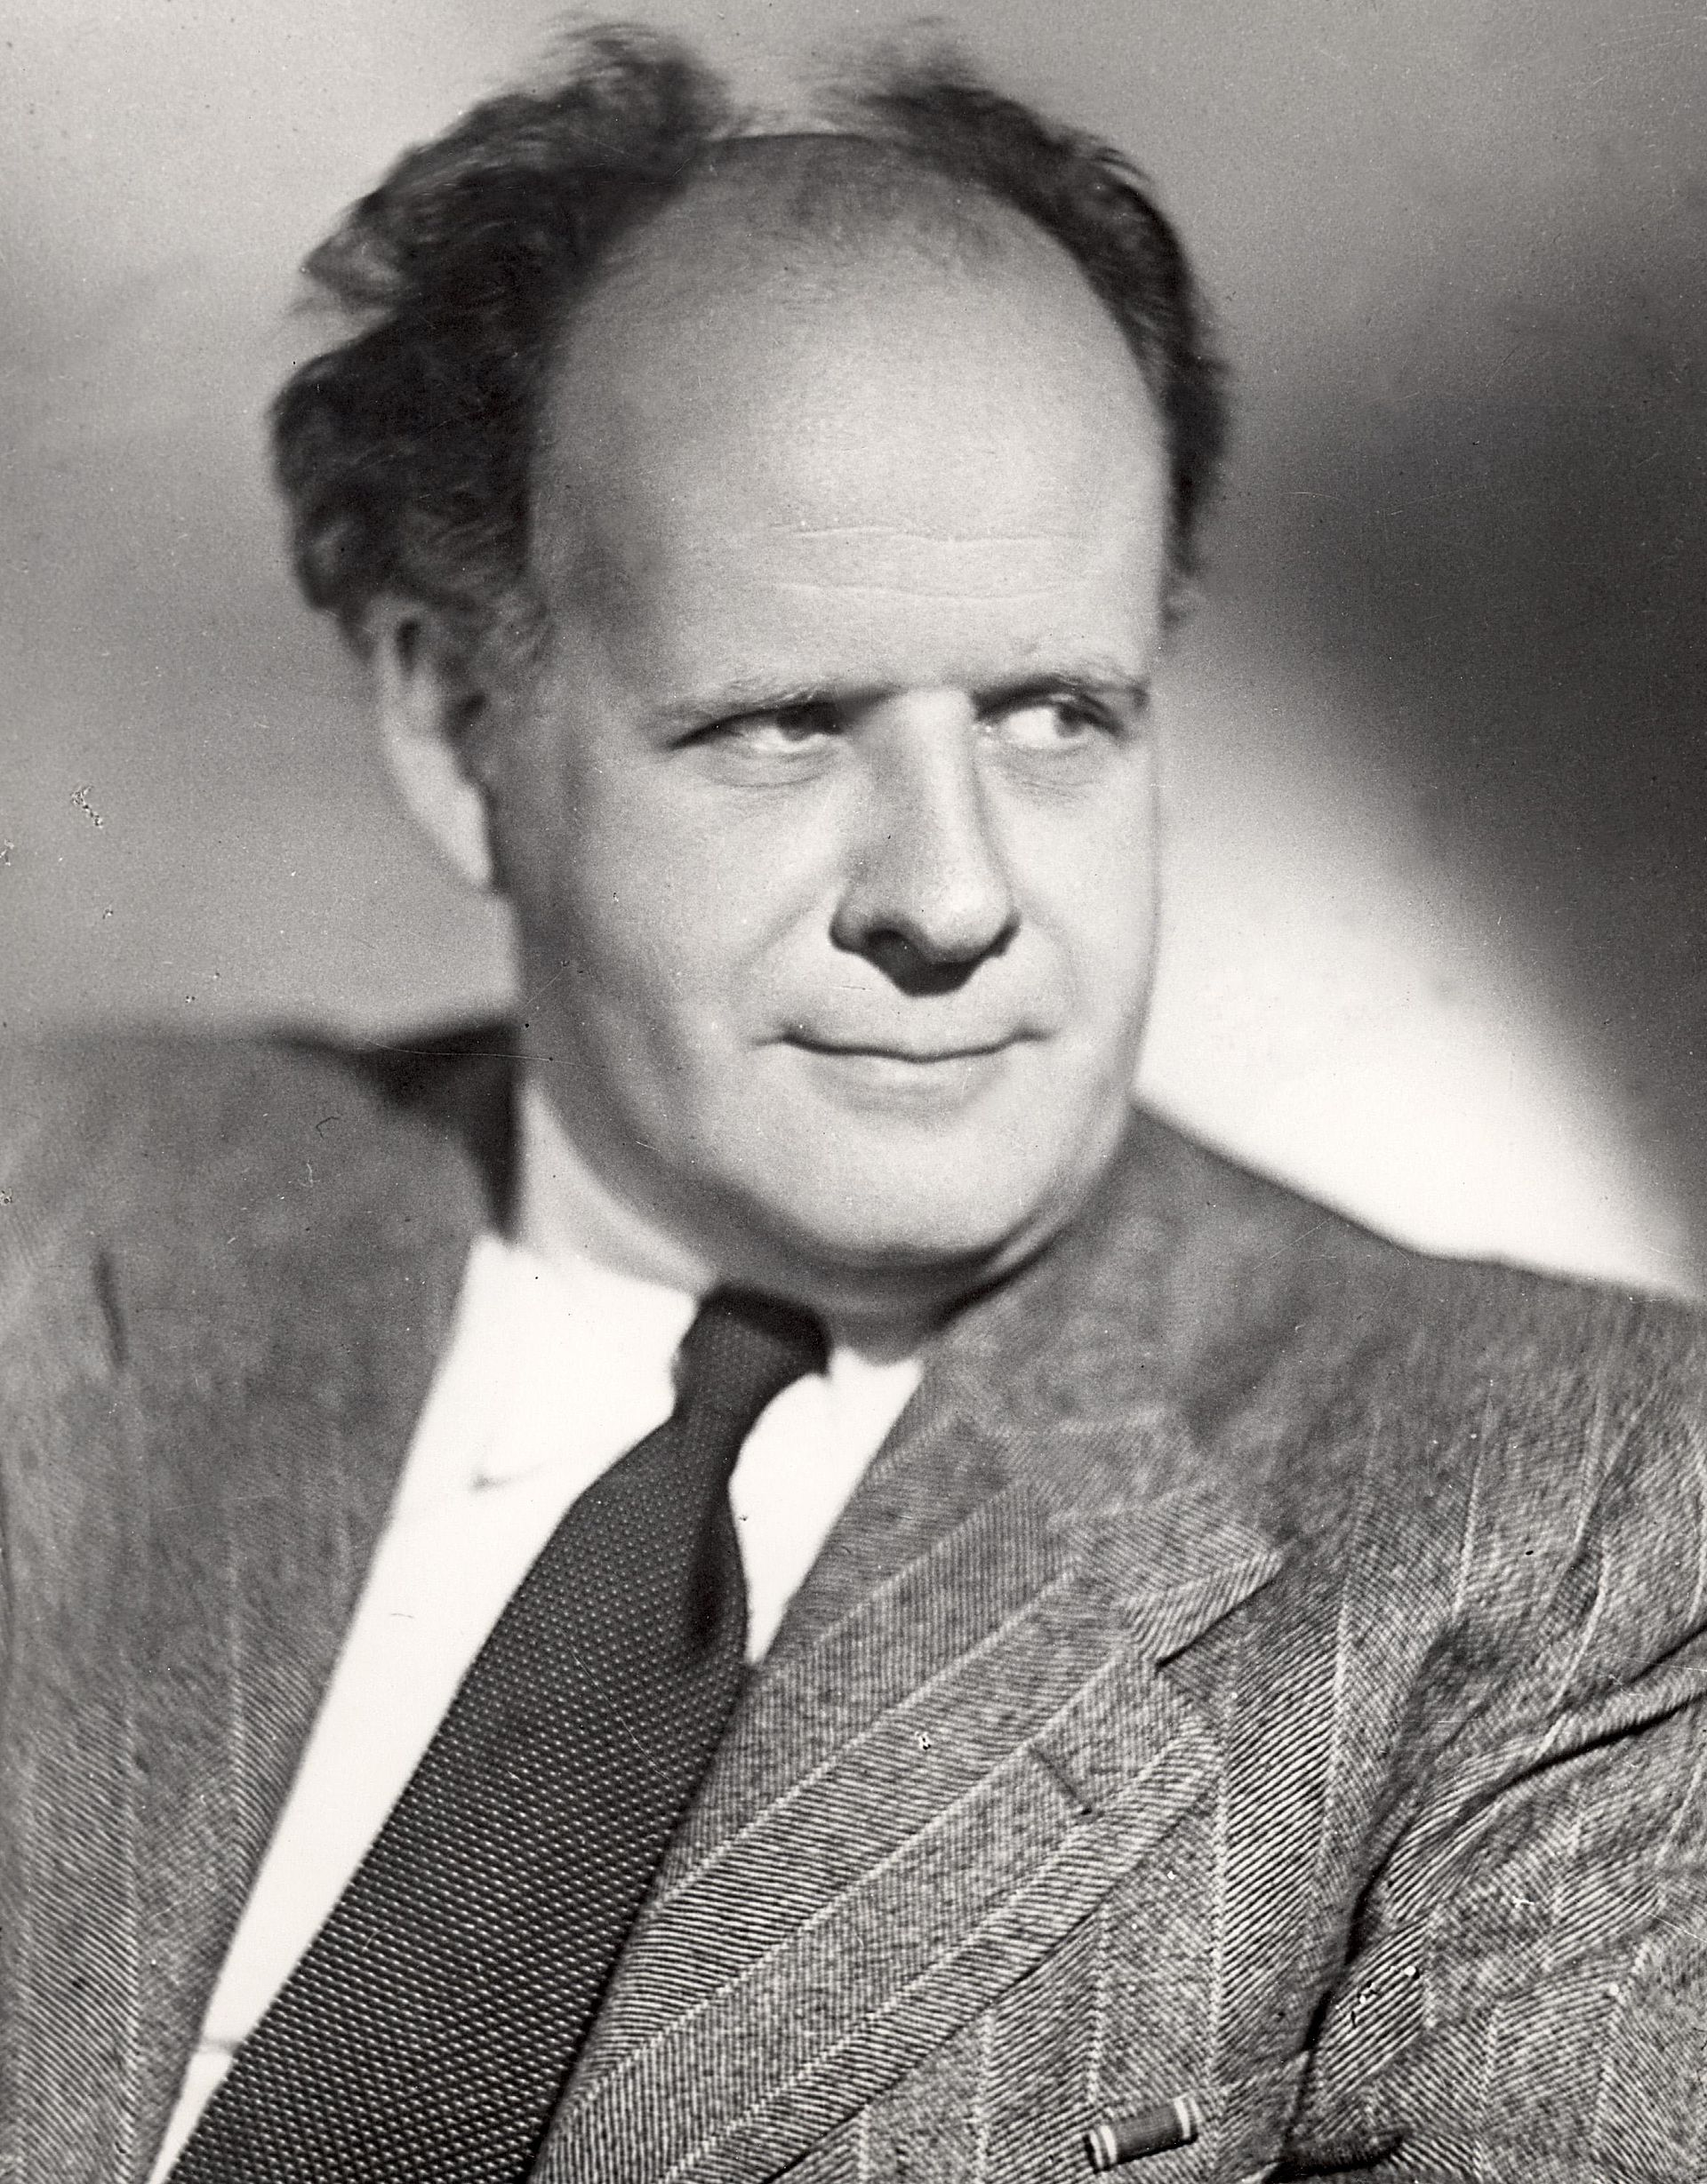 sergei eisenstein essays montage Sergei eisenstein's montage techniques and their meanings in comparison to louis buñuel's un chien andalou - sandra kuberski - essay - film science - publish your bachelor's or master's thesis, dissertation, term paper or essay.